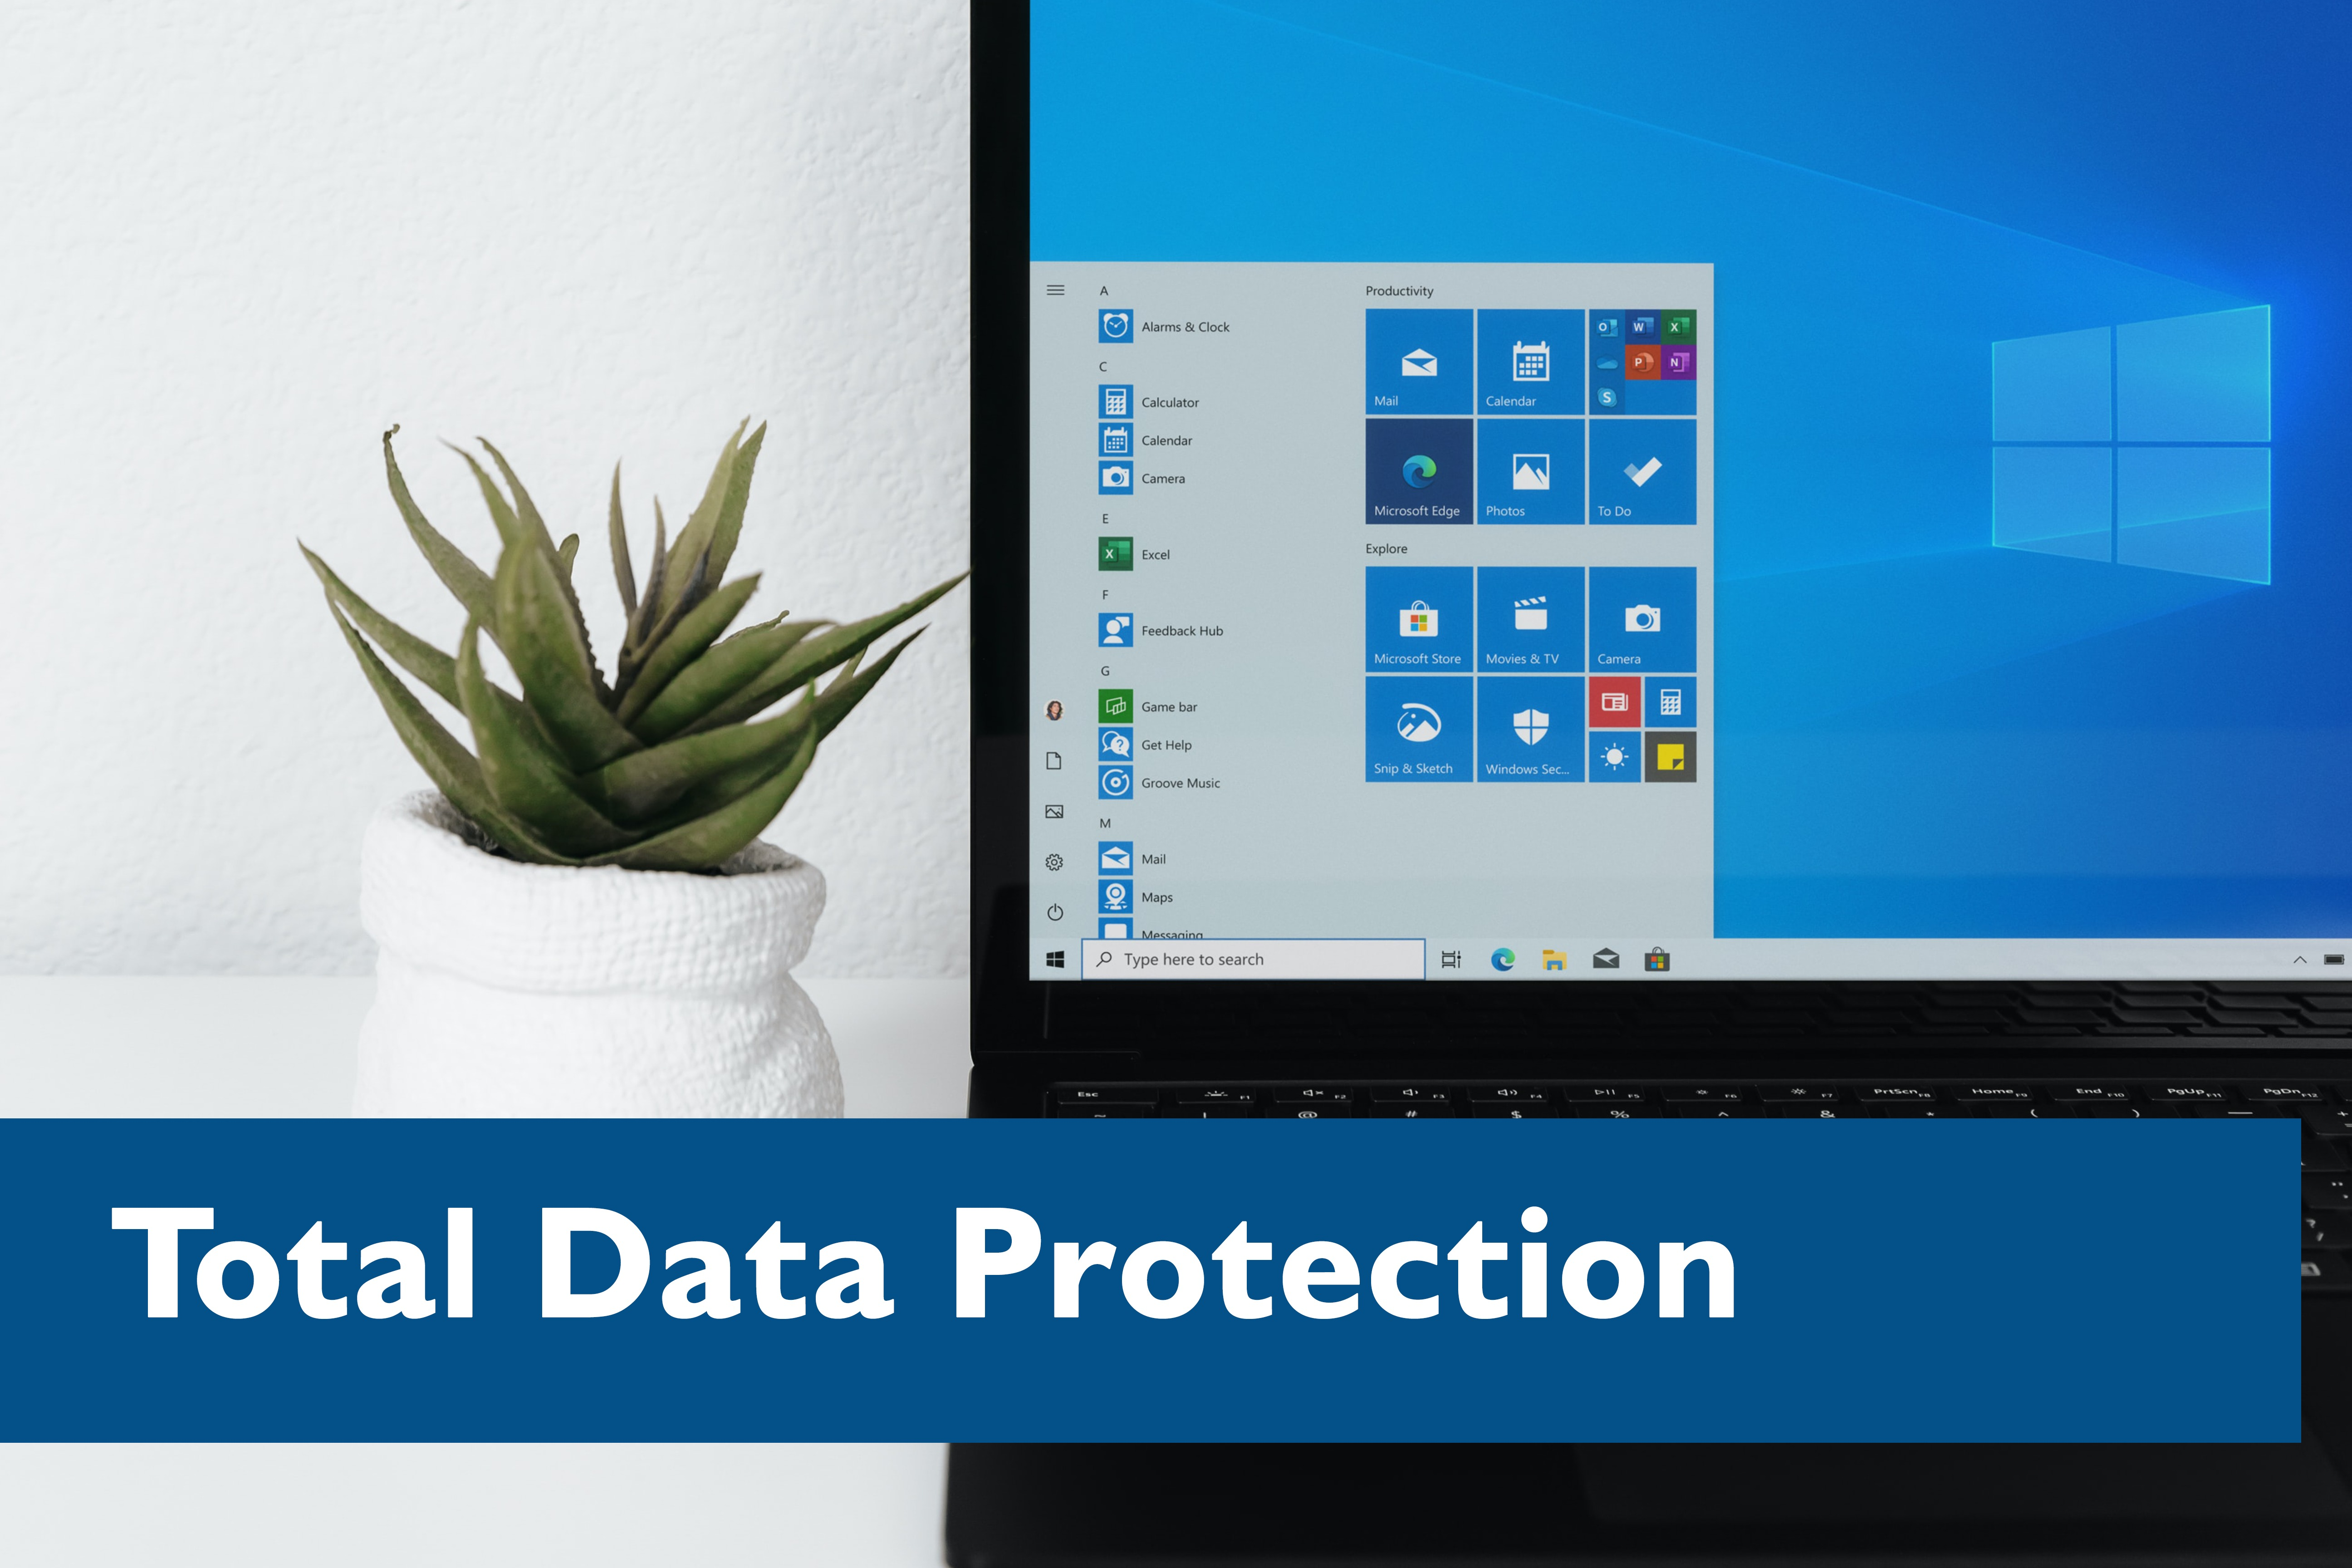 Total Data Protection